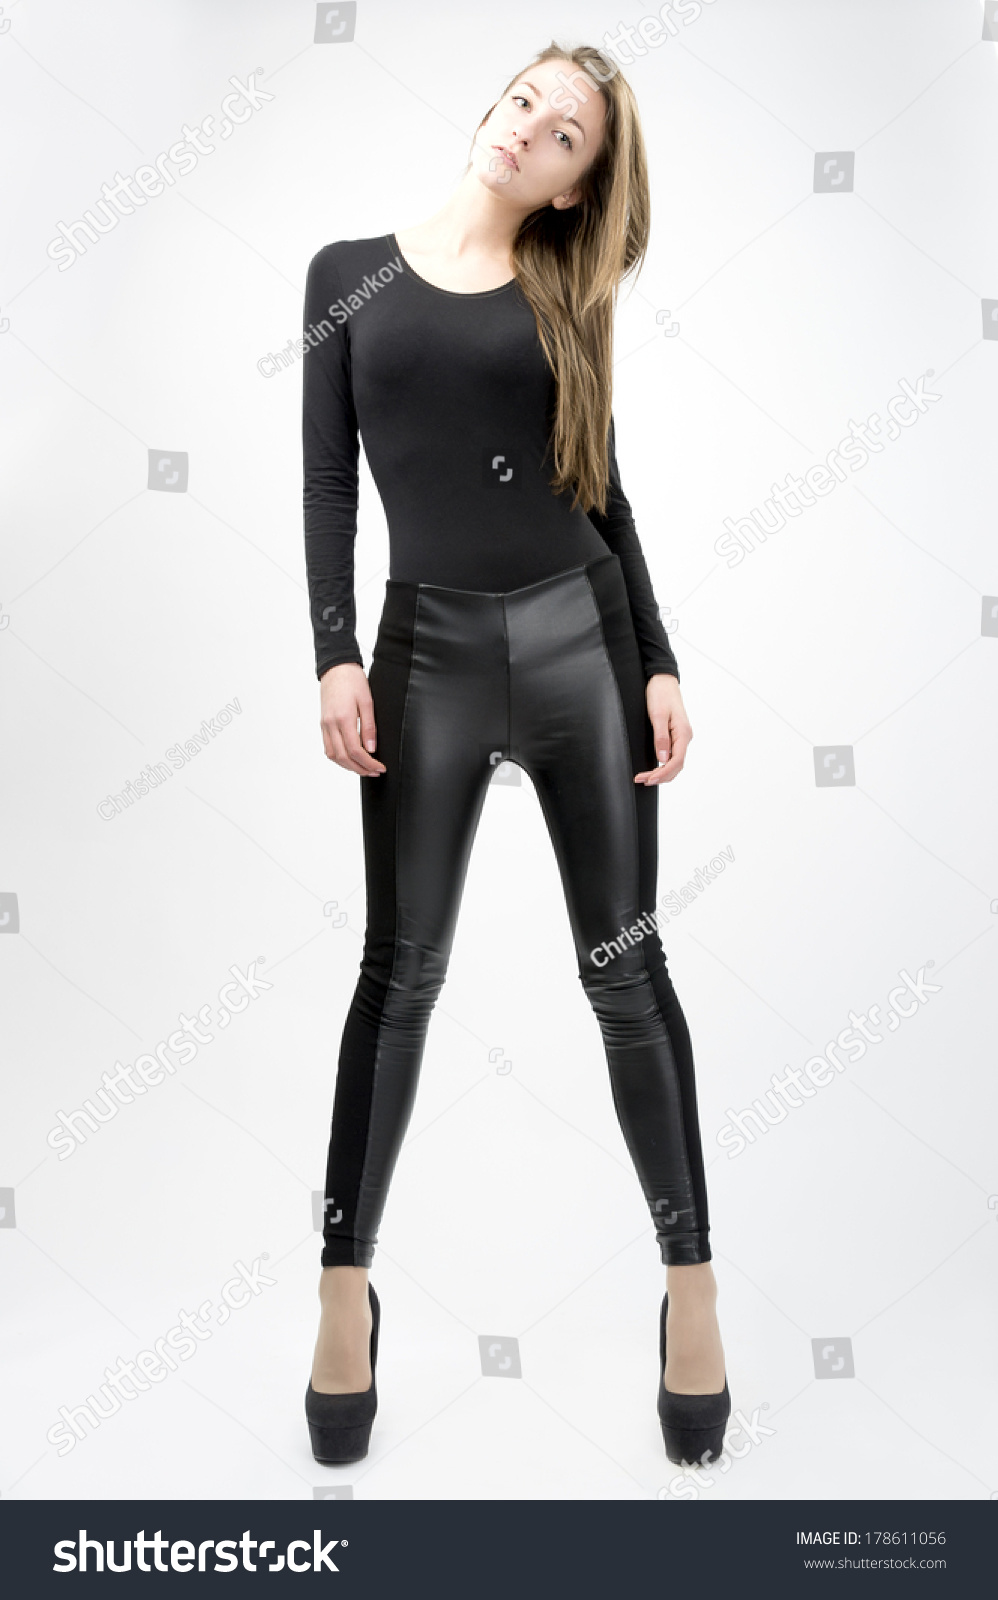 Female Fashion Model Wearing Tight Black Stock Photo 178611056 ...